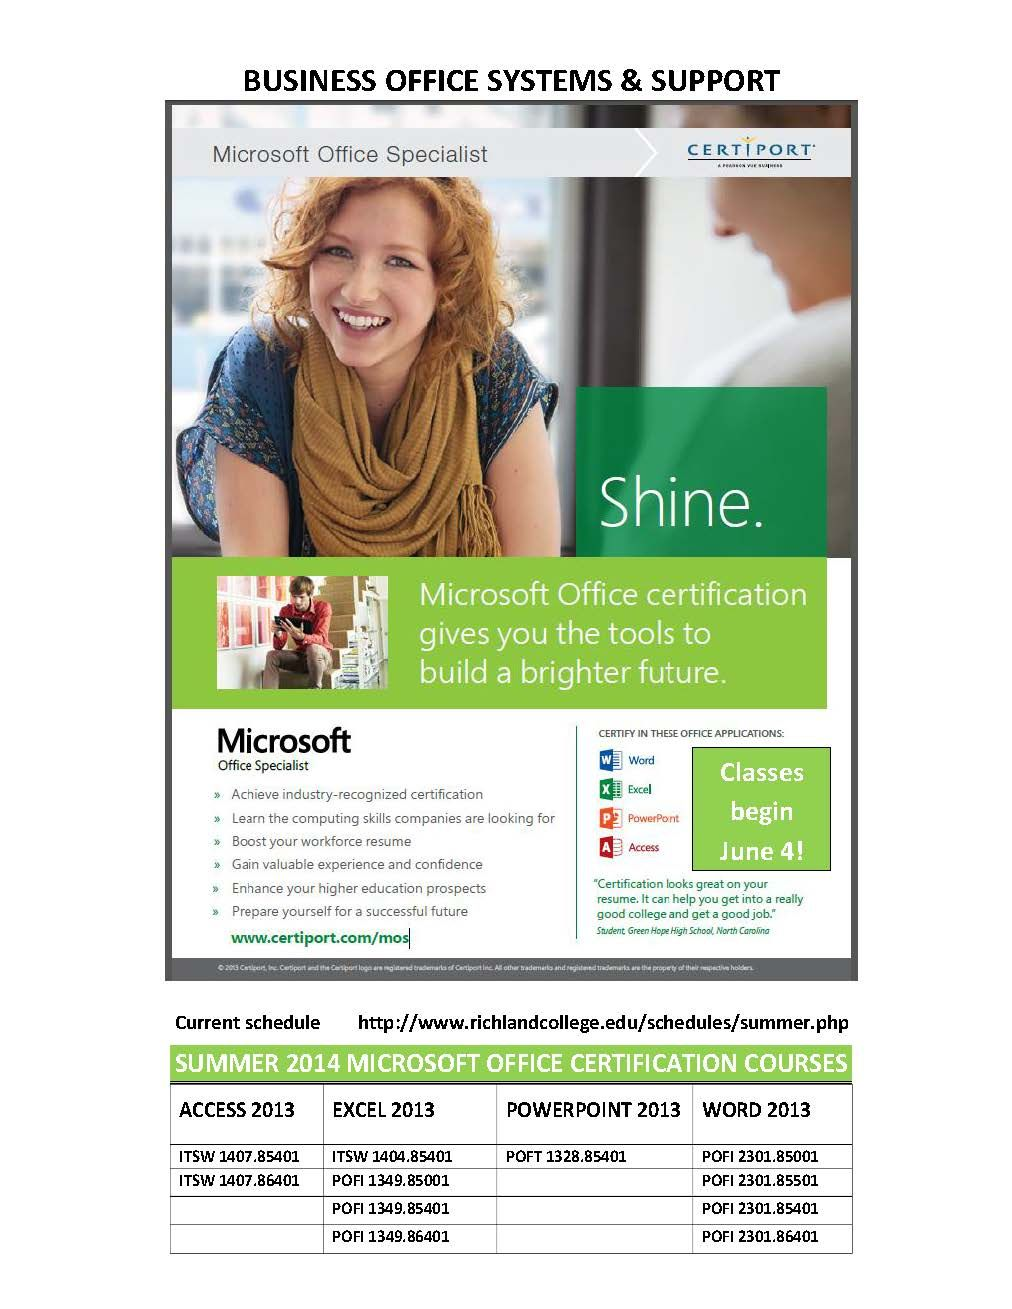 Richland Colleges Boss Program Is Offering Microsoft Office